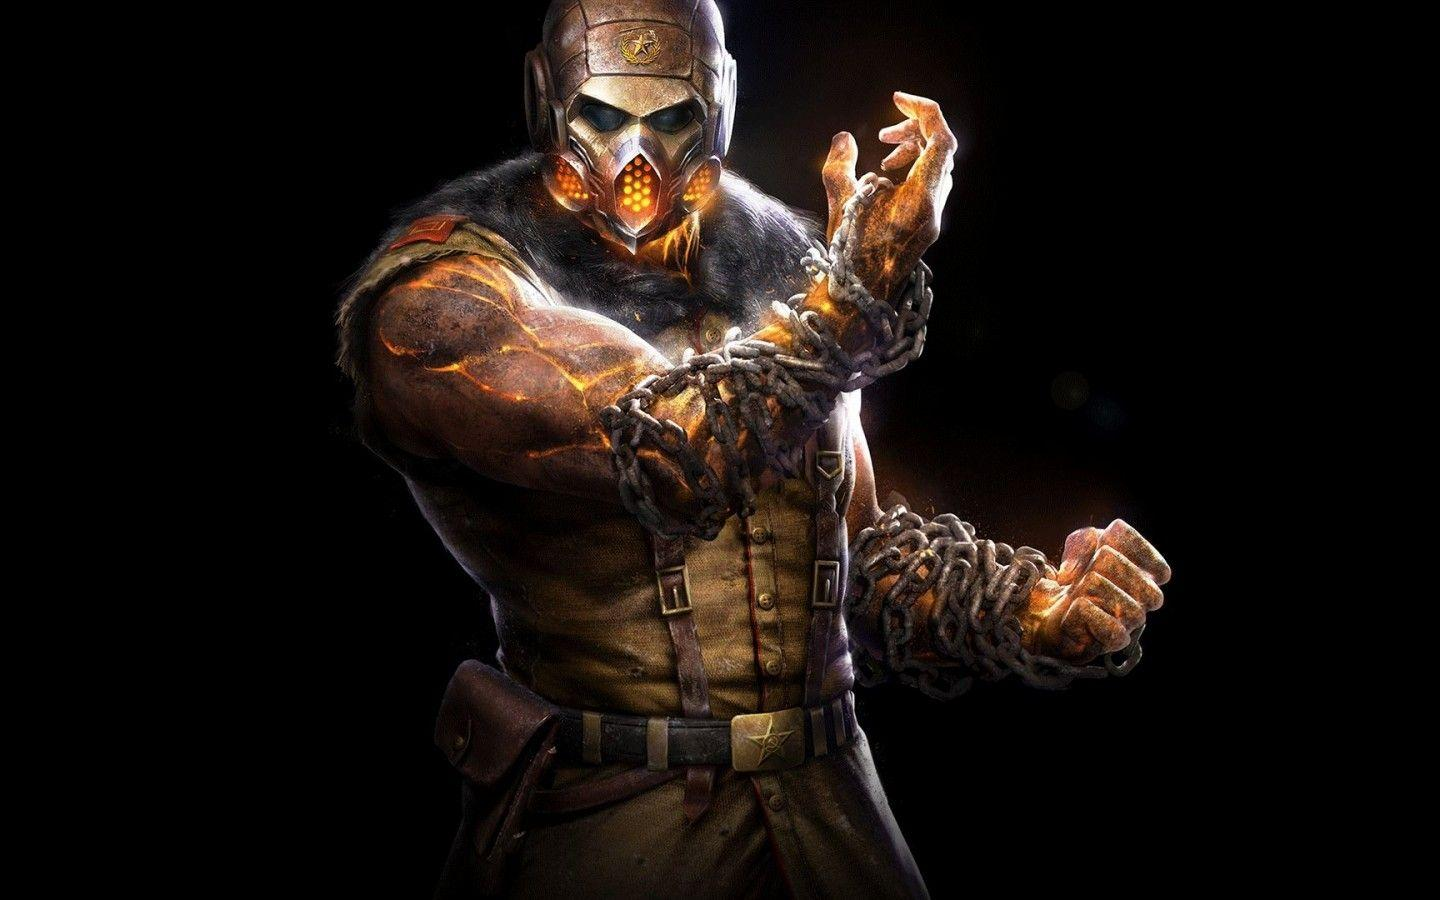 Download 1440x900 Mortal Kombat X, Scorpion, Kold War Wallpapers for